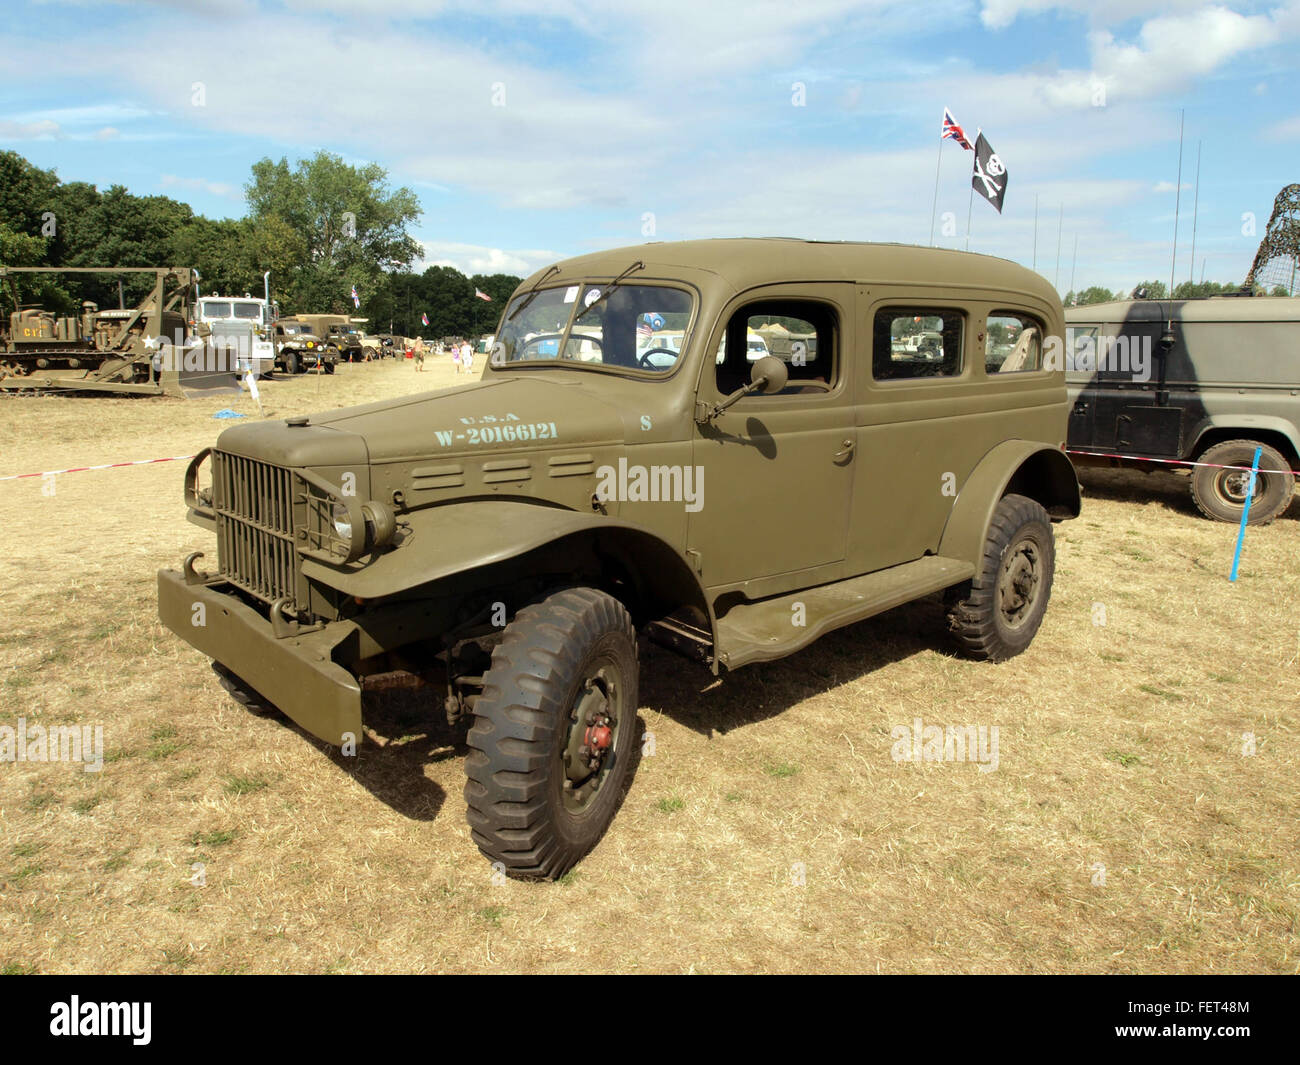 Dodge WC 53 Carryall W-20166121 S pic1 - Stock Image